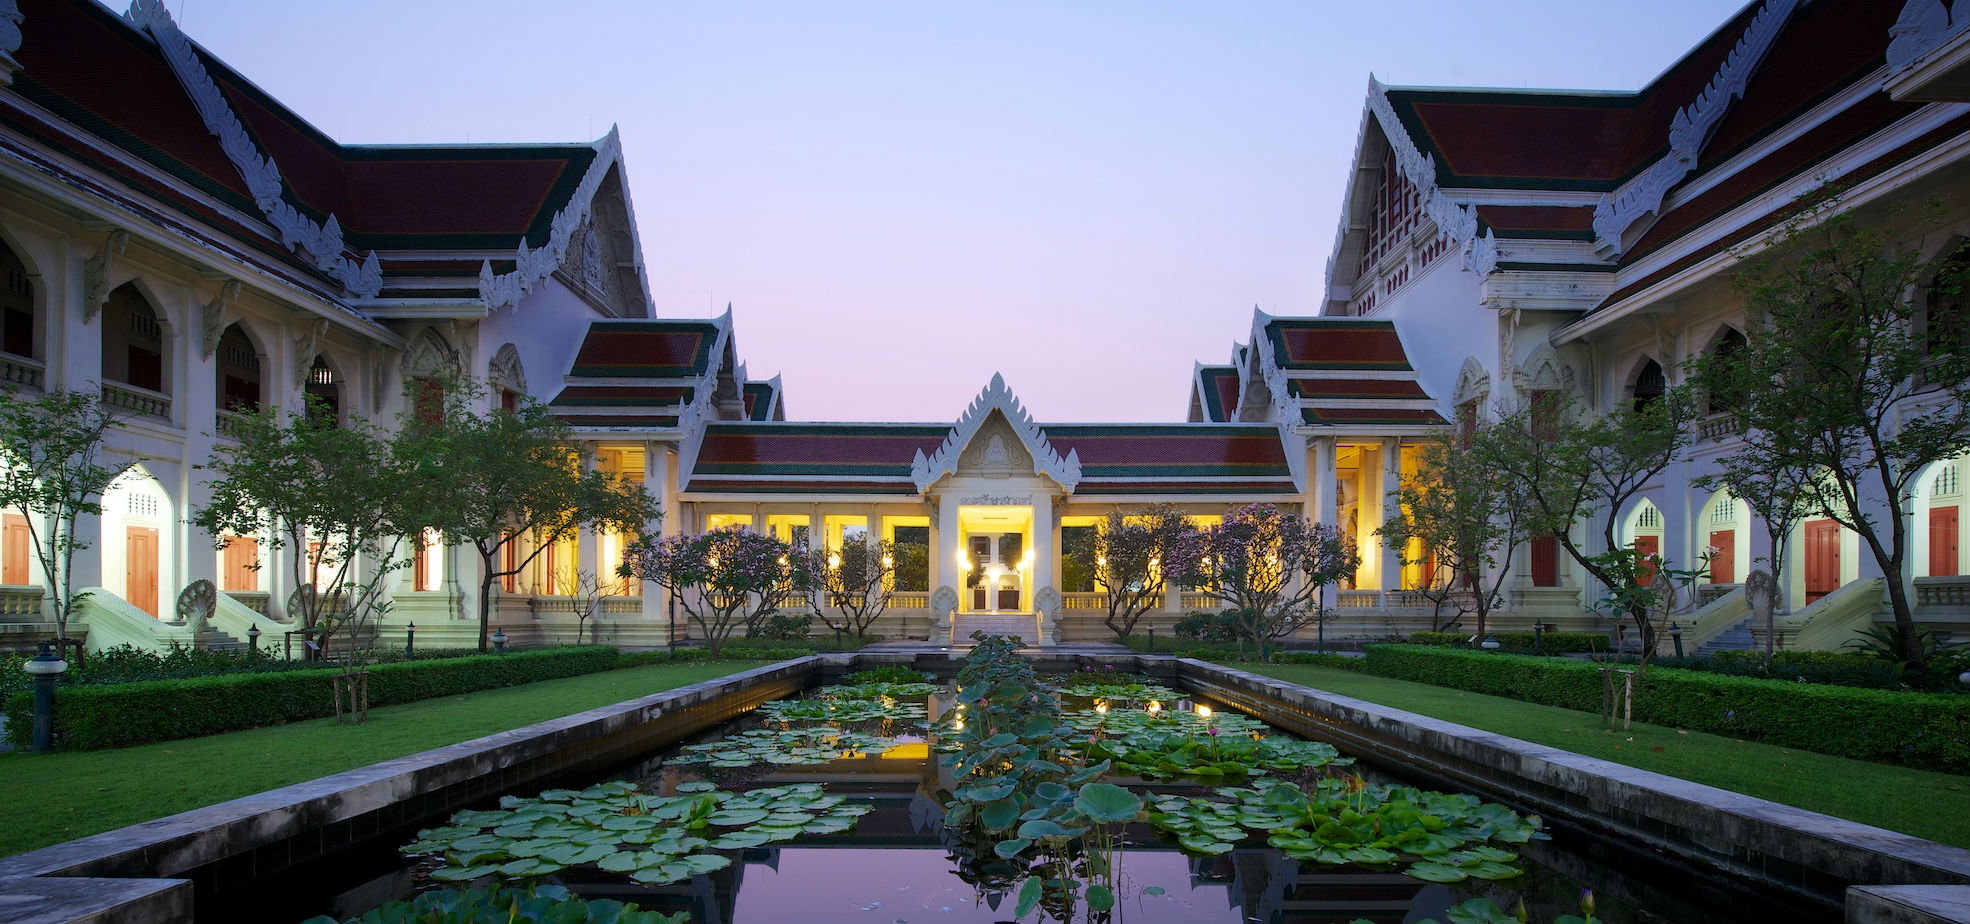 Best Universities for English Language and Literature in Asia